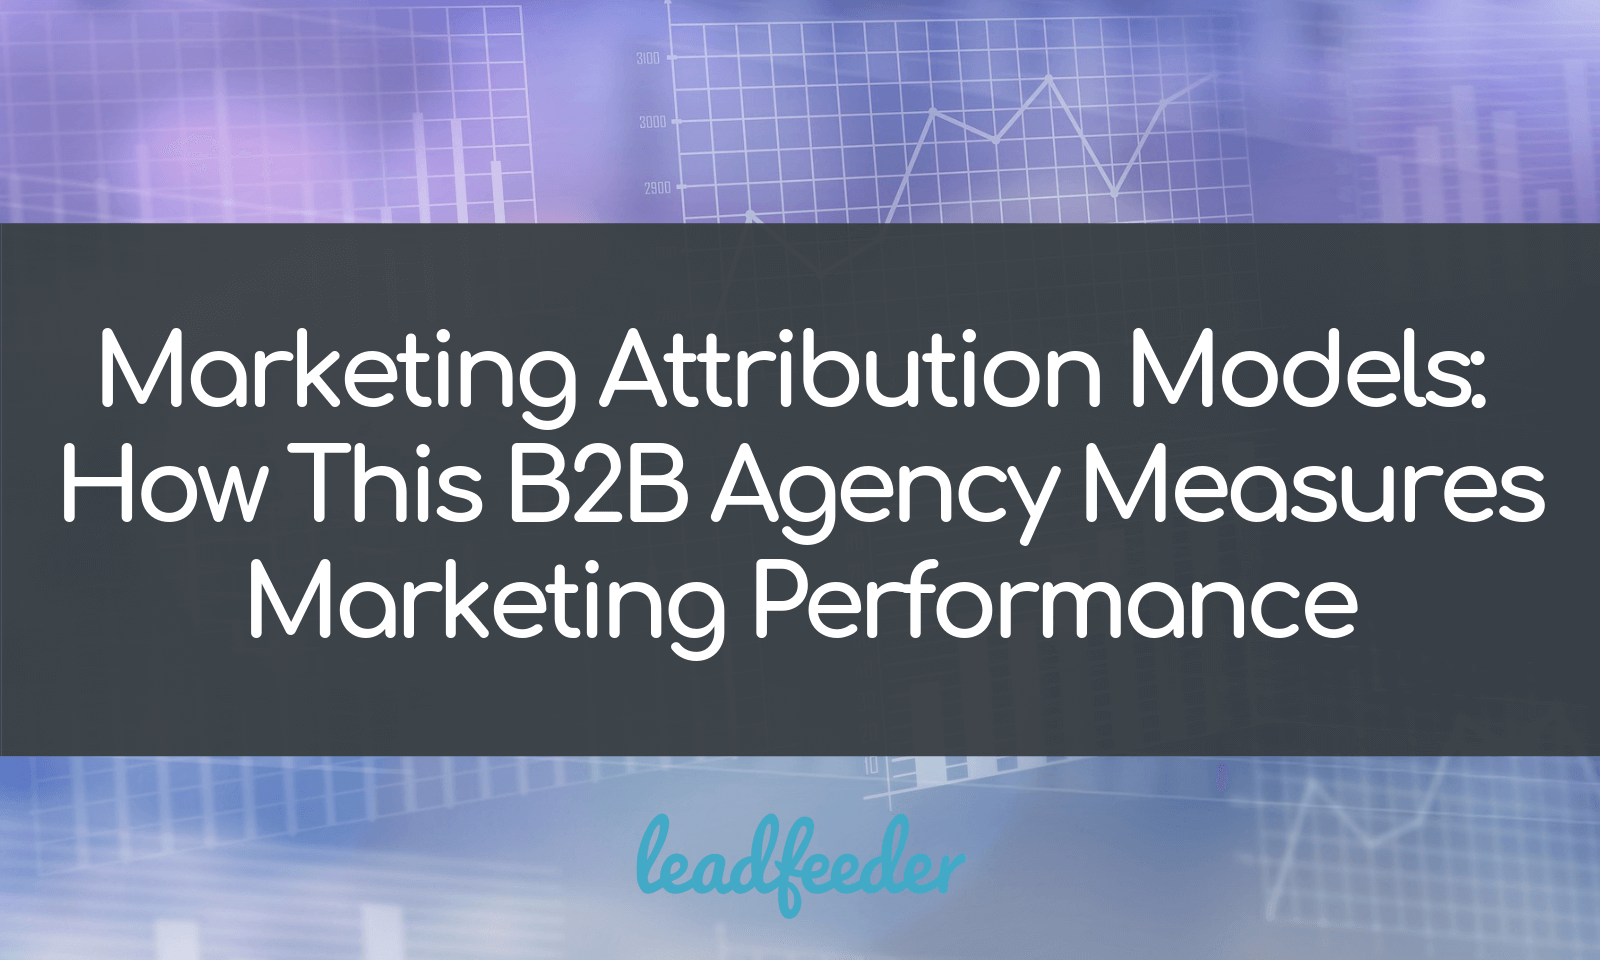 Marketing Attribution Models: How This B2B Agency Measures Marketing Performance